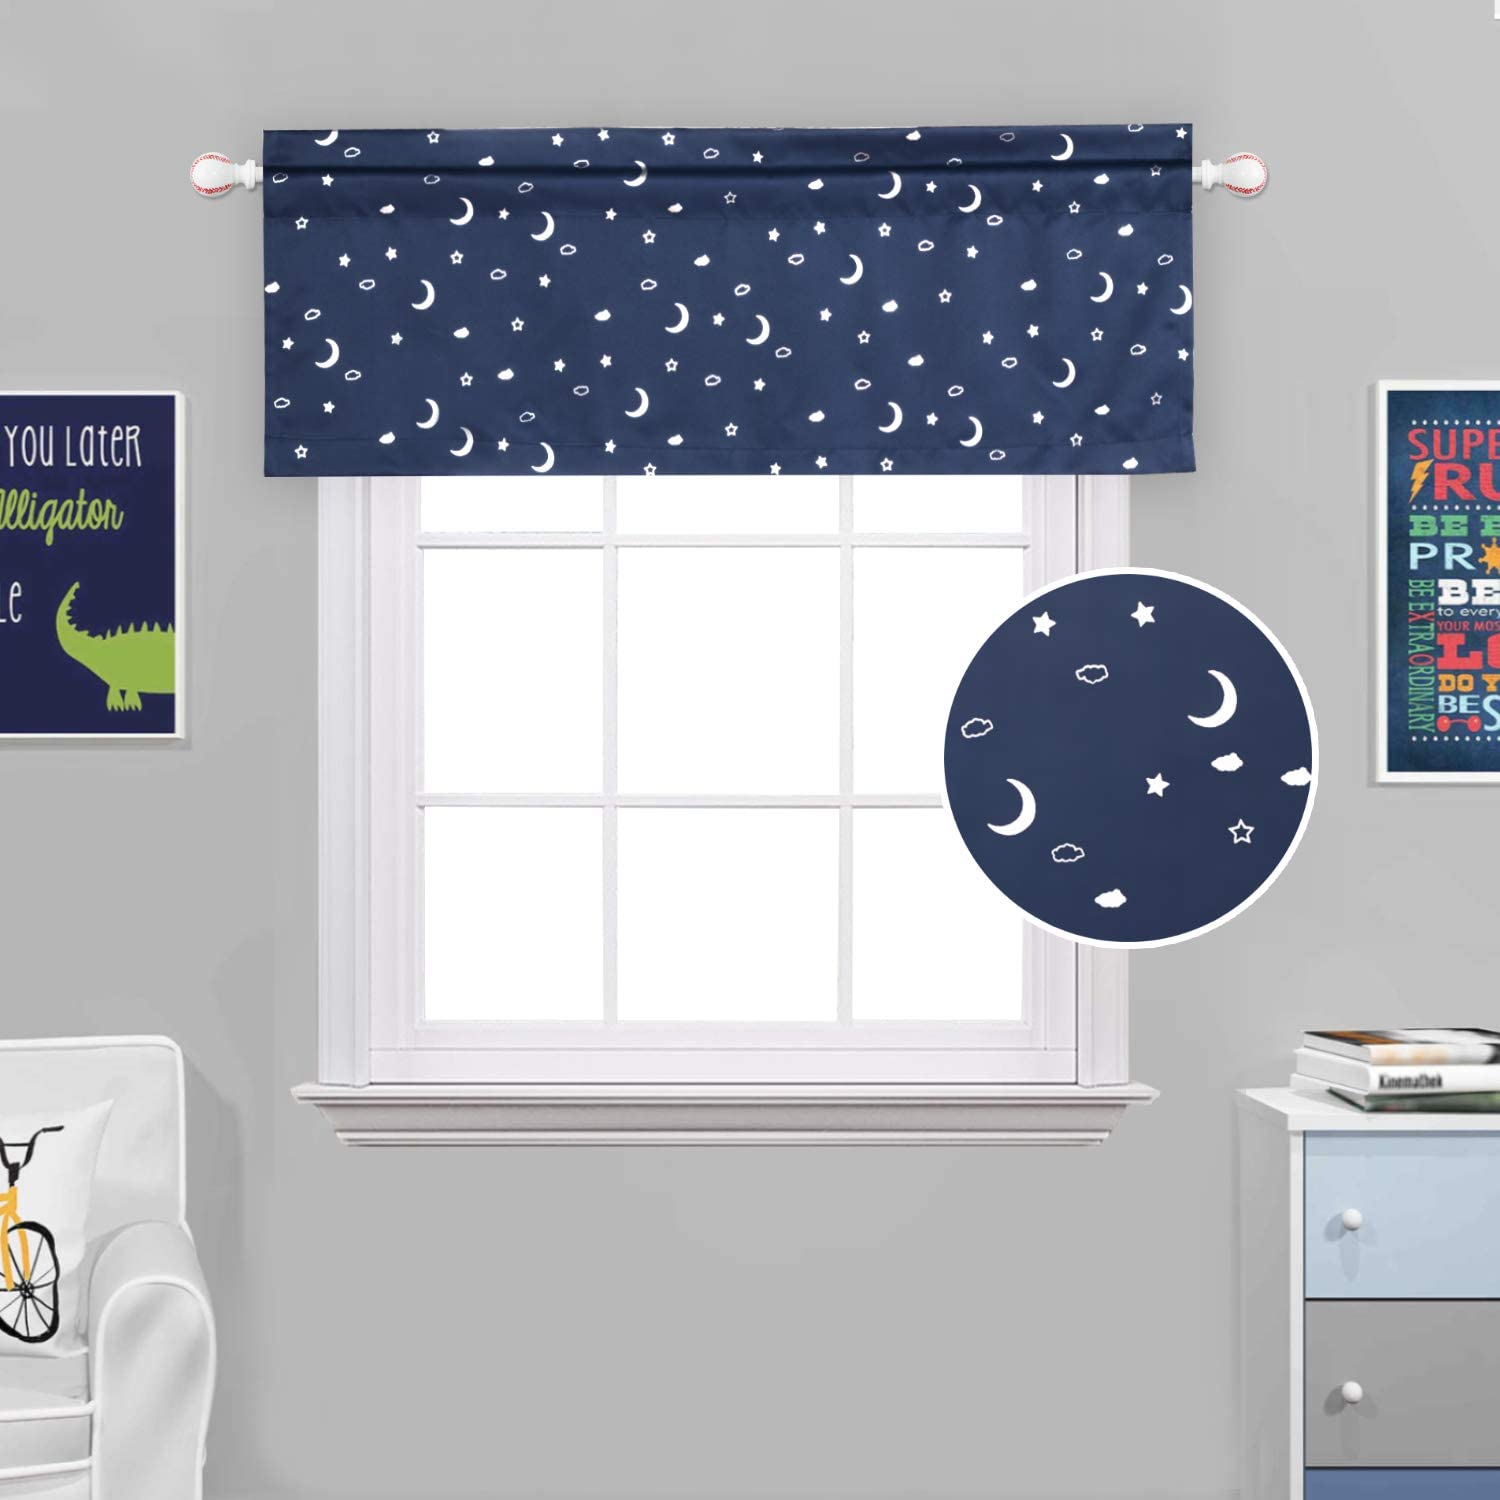 H.VERSAILTEX Blackout Energy Efficient Rod Pocket 52-inch by 18-inch Curtain Valance for Kitchen, Bath, Laundry, Bedroom, Living Room, Moon and Star in Navy Base, 1 Piece